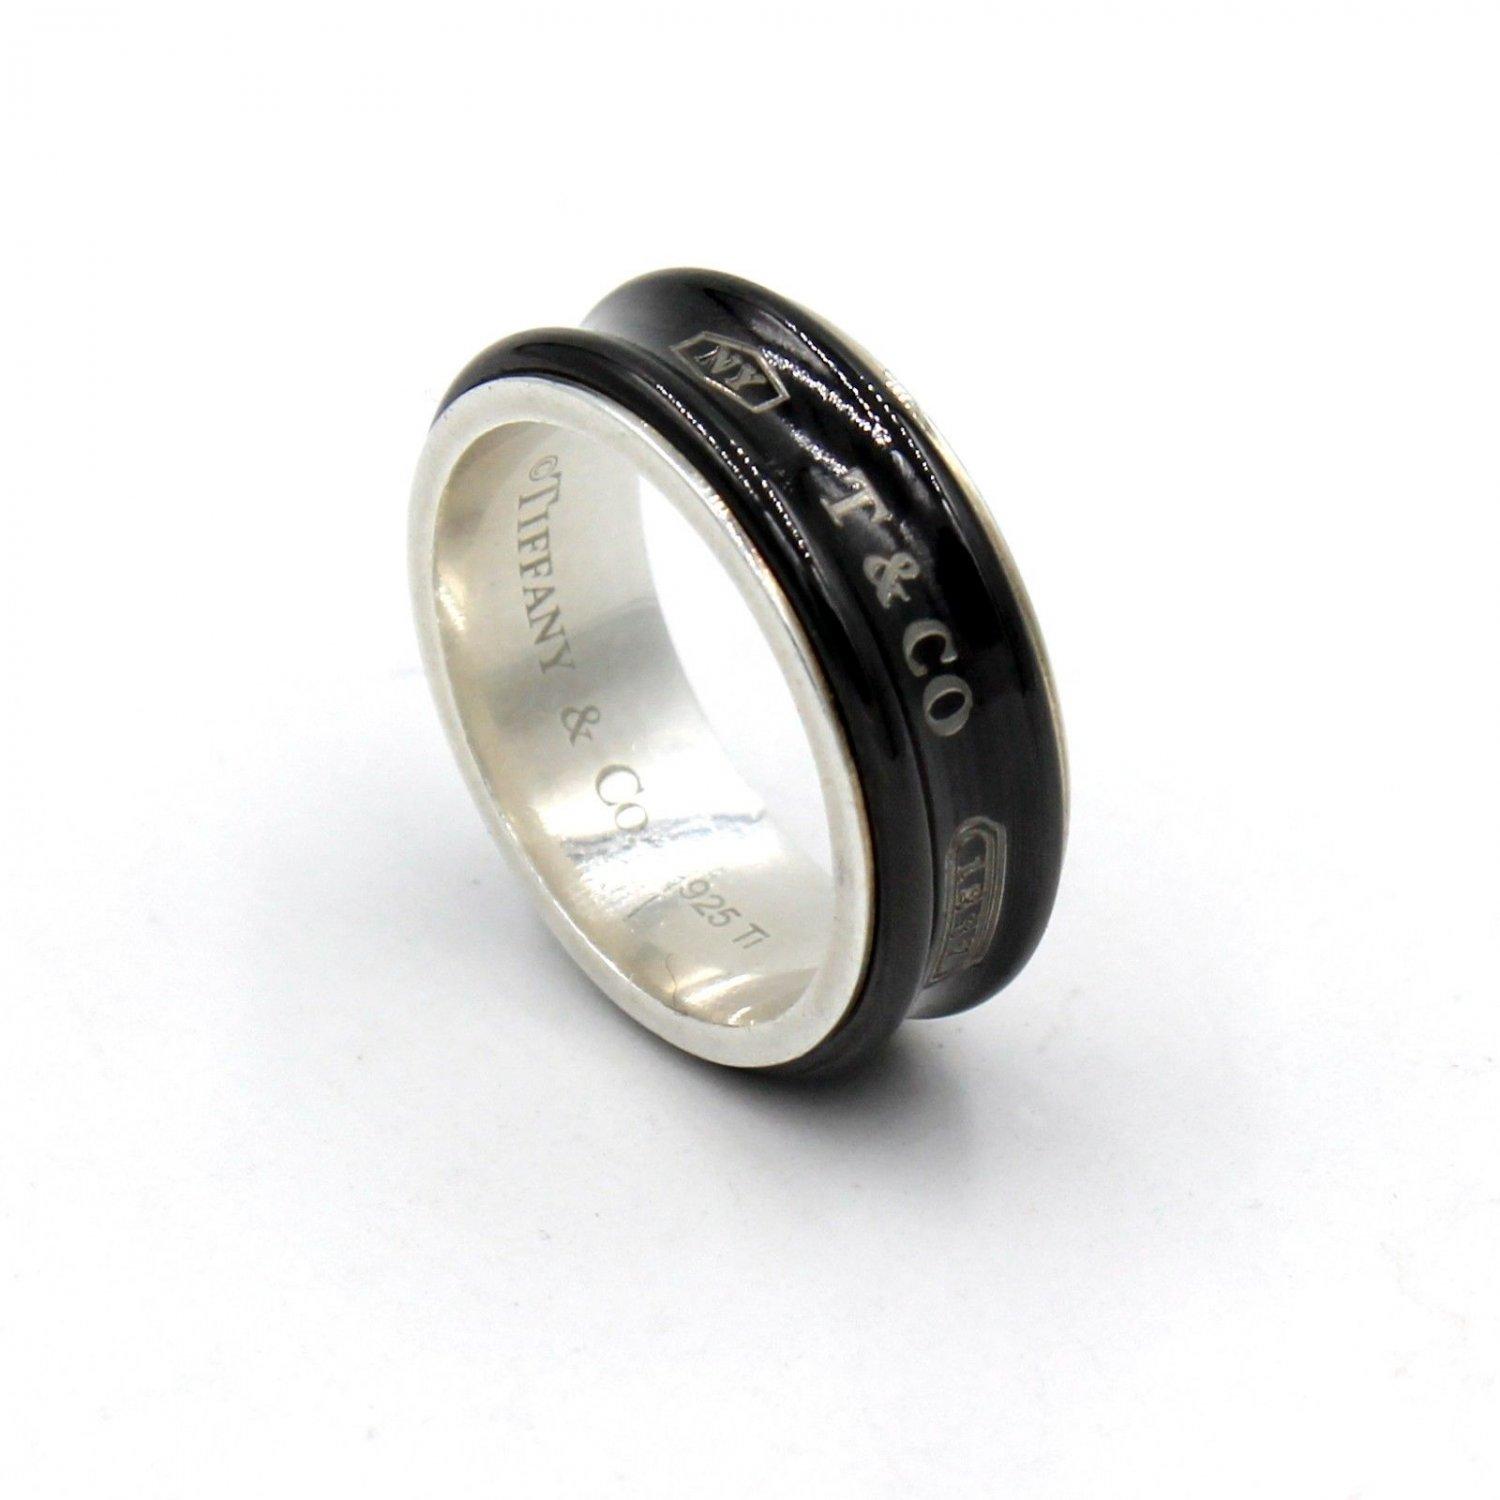 Tiffany & Co. 1837 7mm Band Ring in Titanium and 925 Sterling Silver Size 10